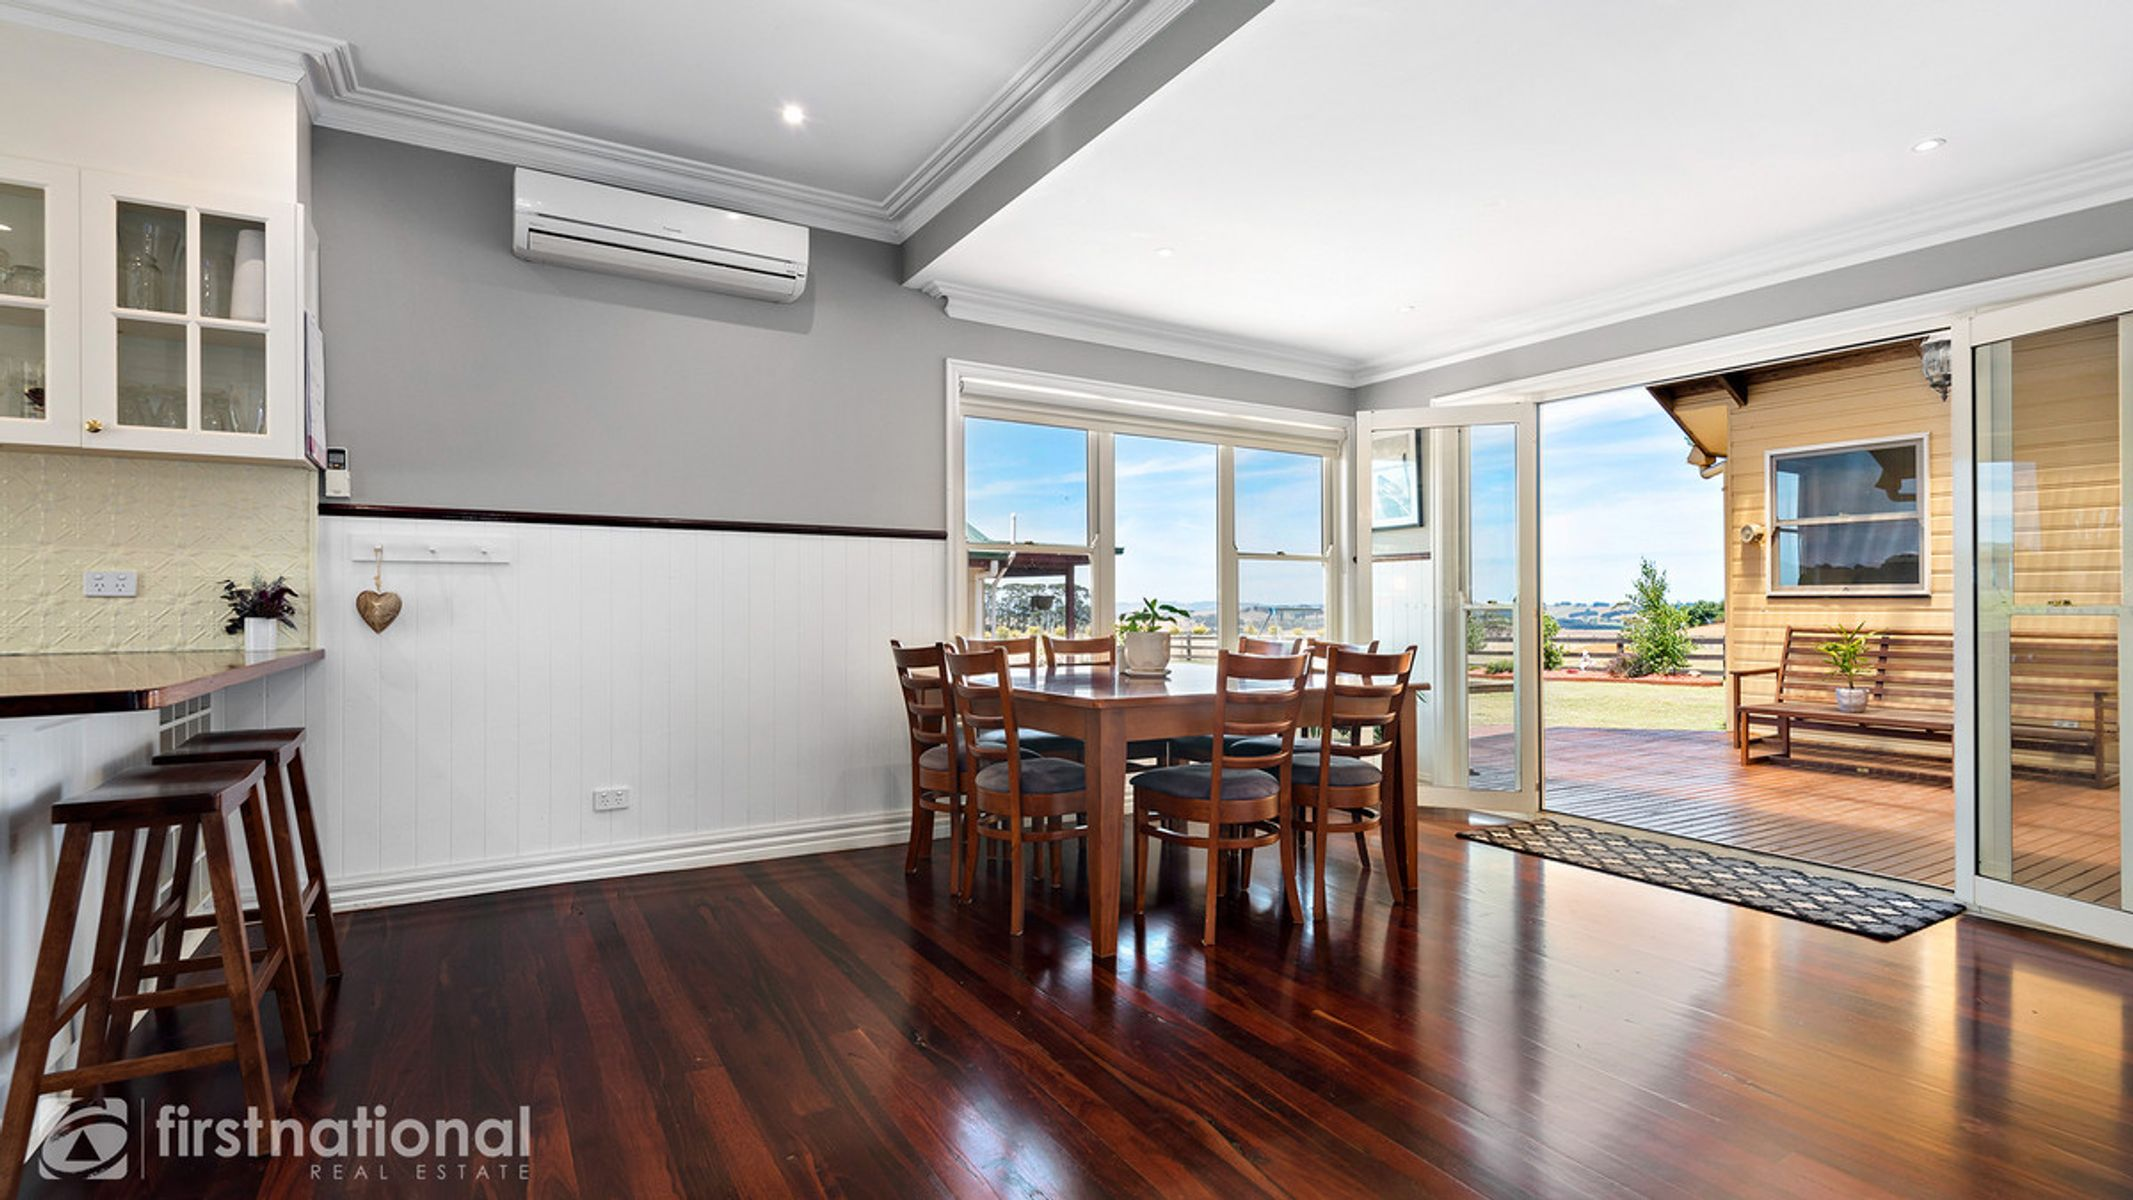 726 Mirboo North - Trafalgar Road, Trafalgar South, VIC 3824